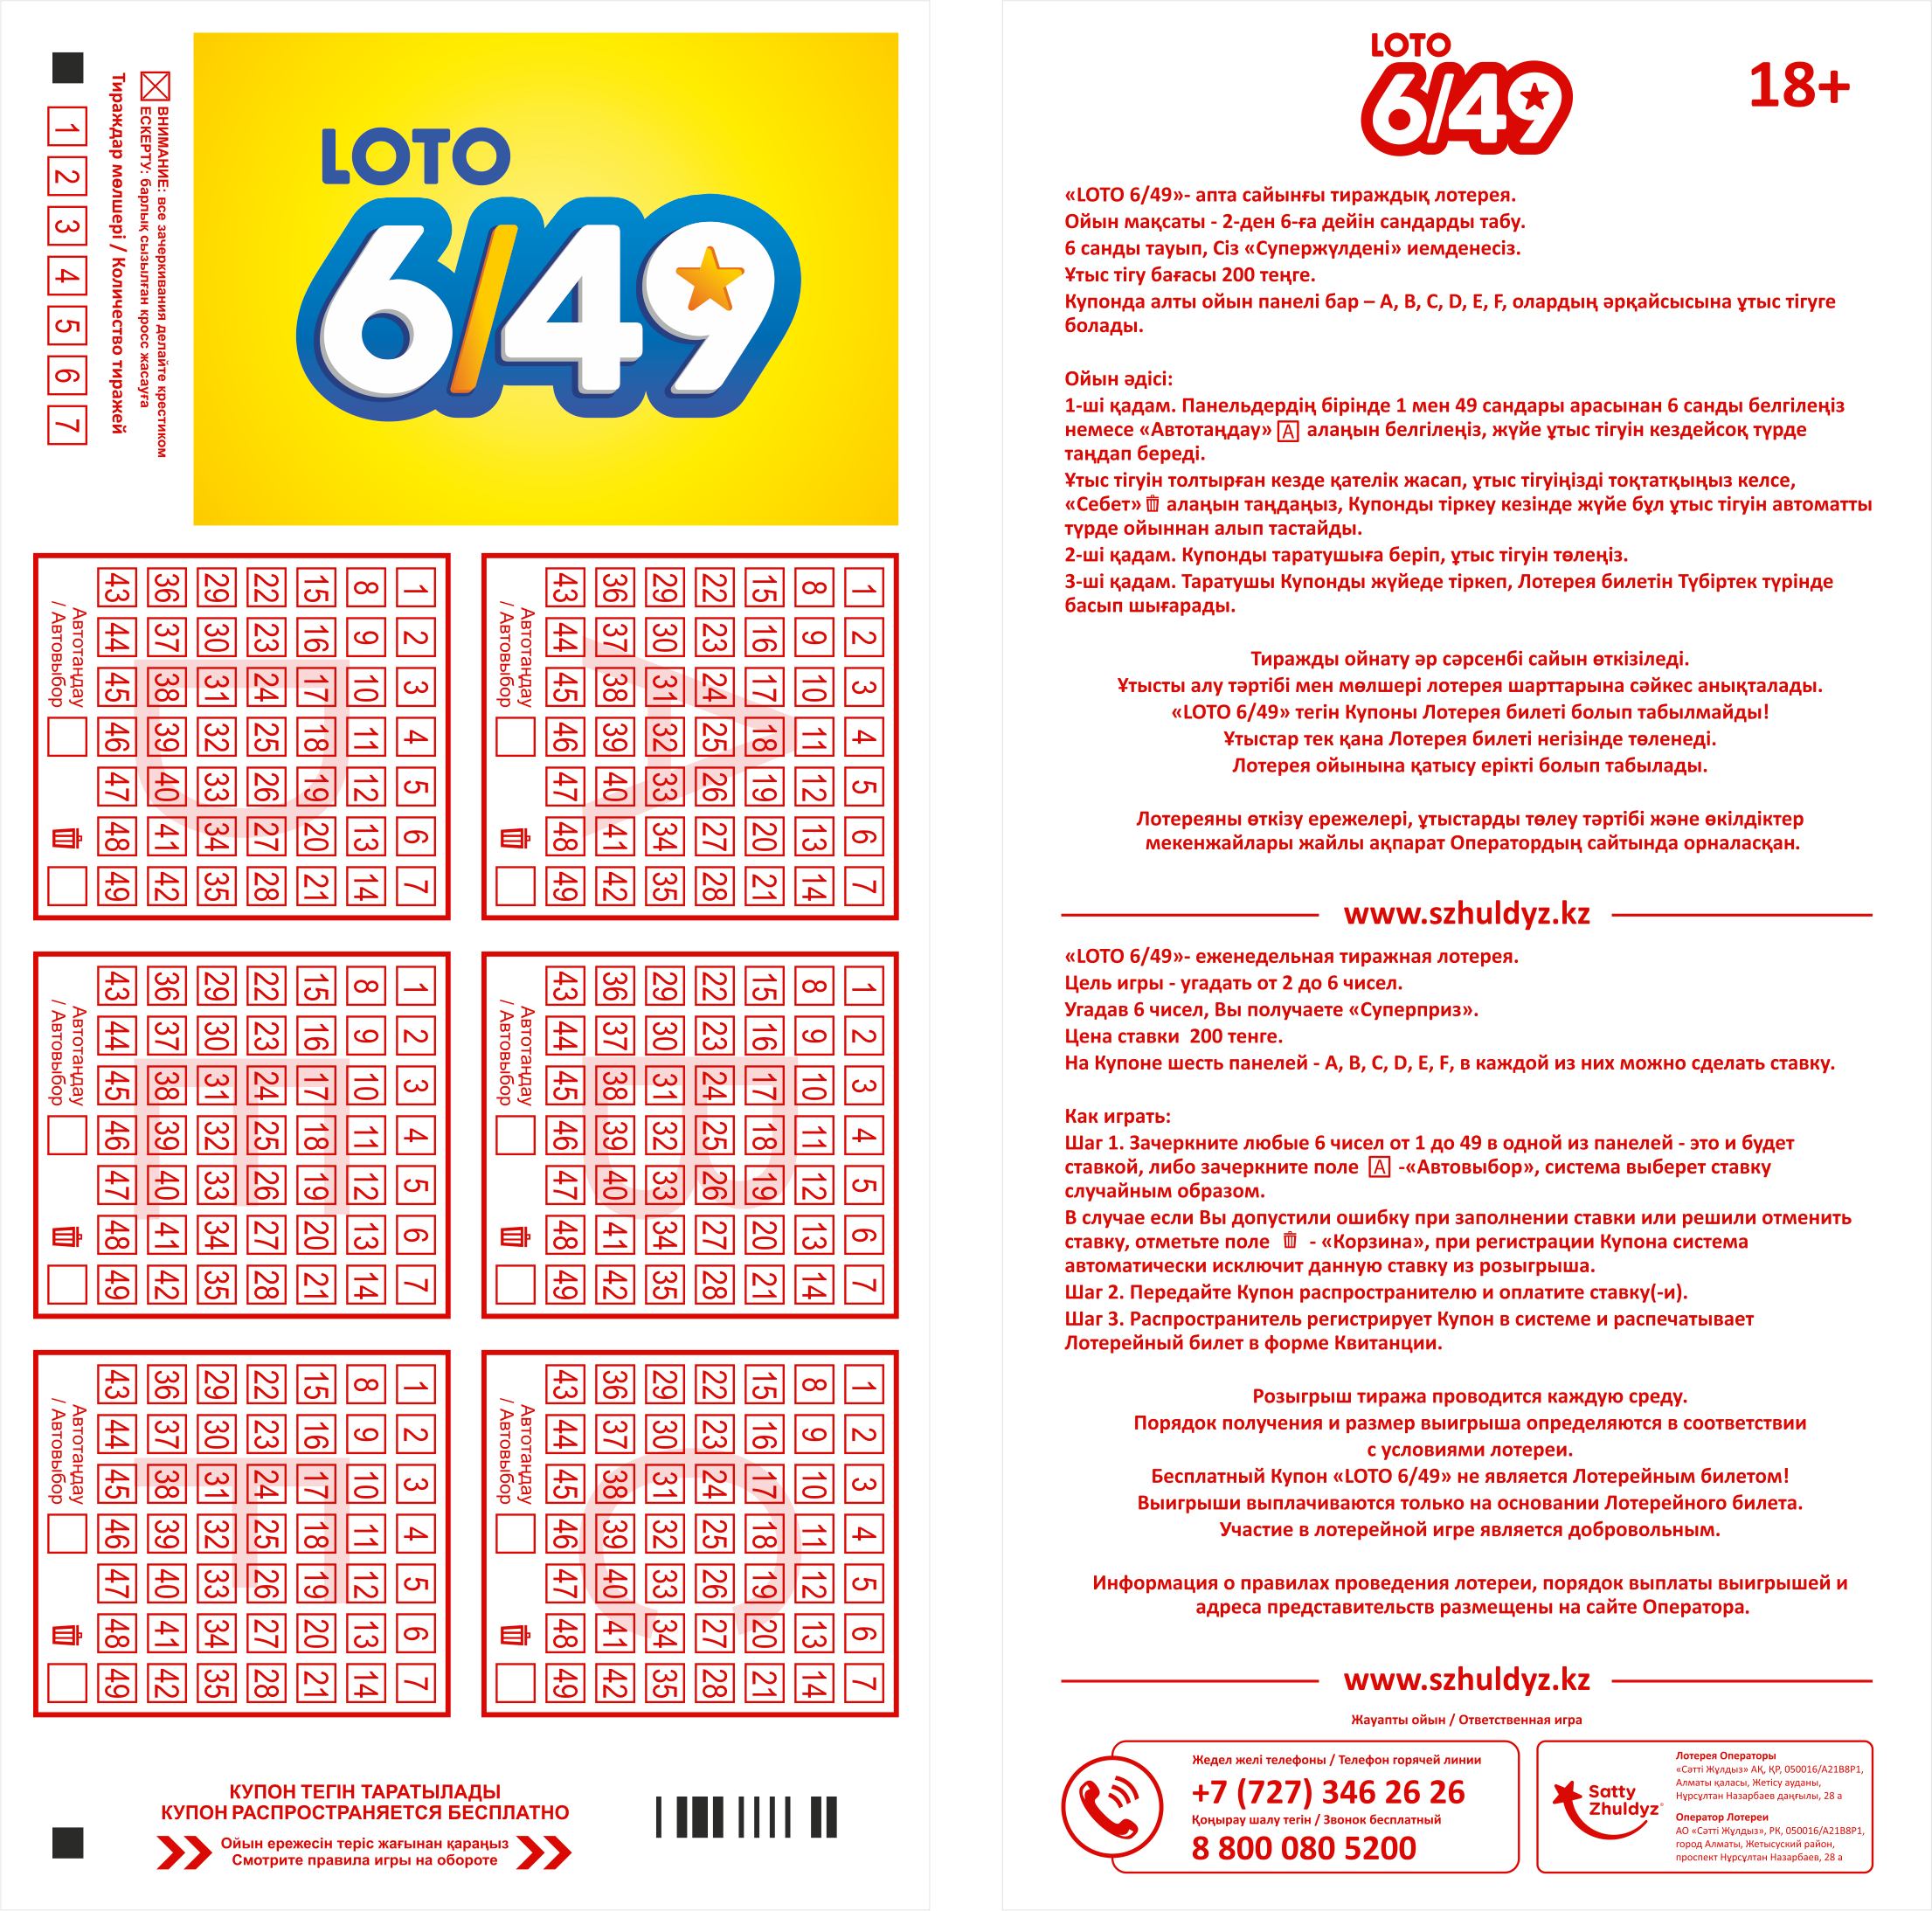 Loteria canadense 649 (6 do 49)